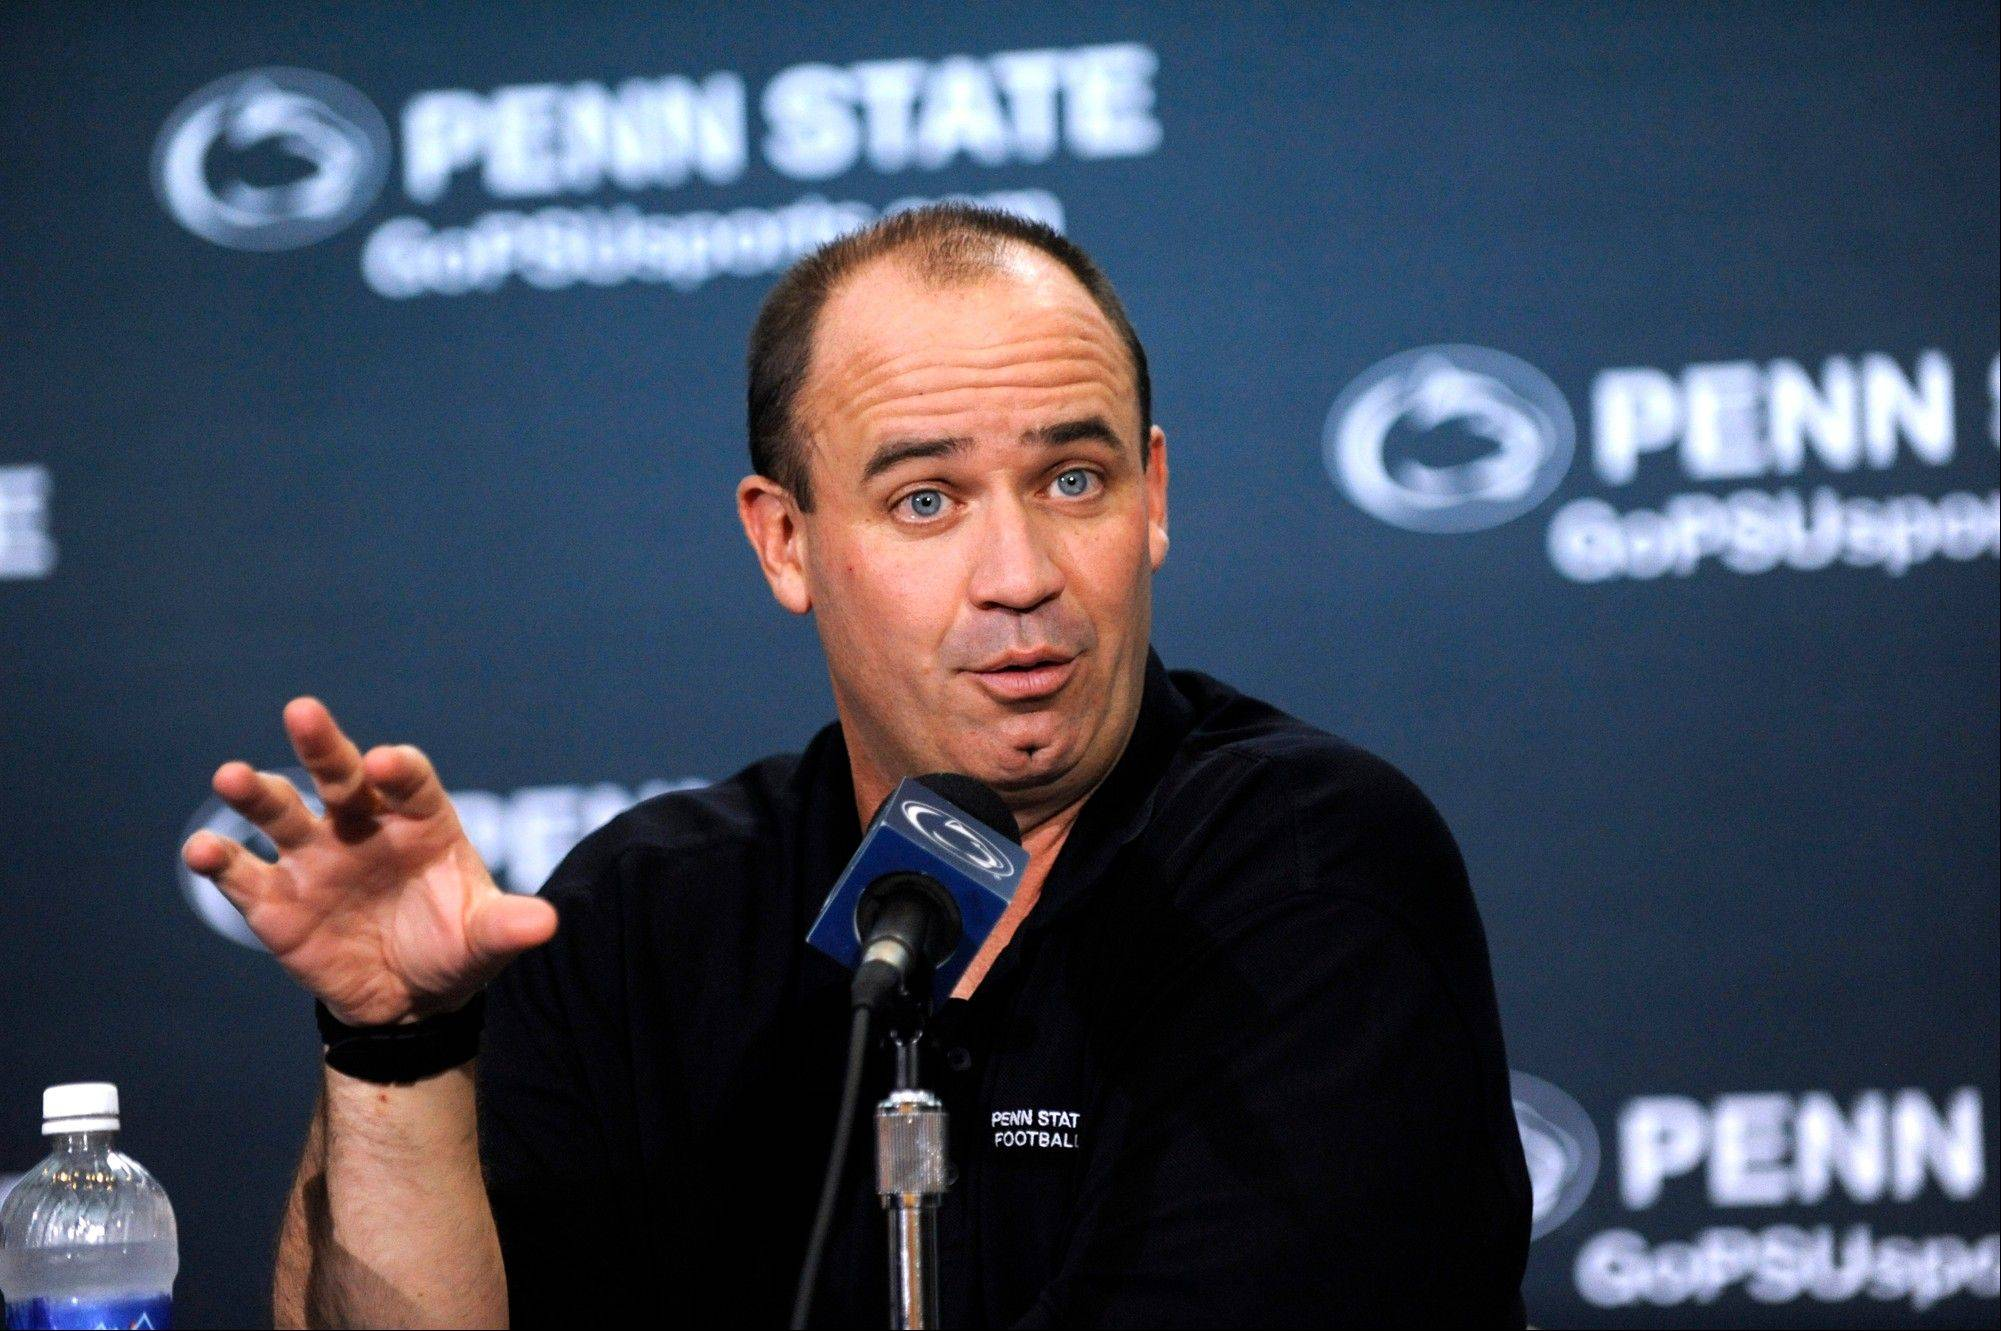 """Running back by committee isn't so bad when you have three good running backs,"" Penn State head coach Bill O'Brien said Tuesday during his weekly news conference in State College, Pa."